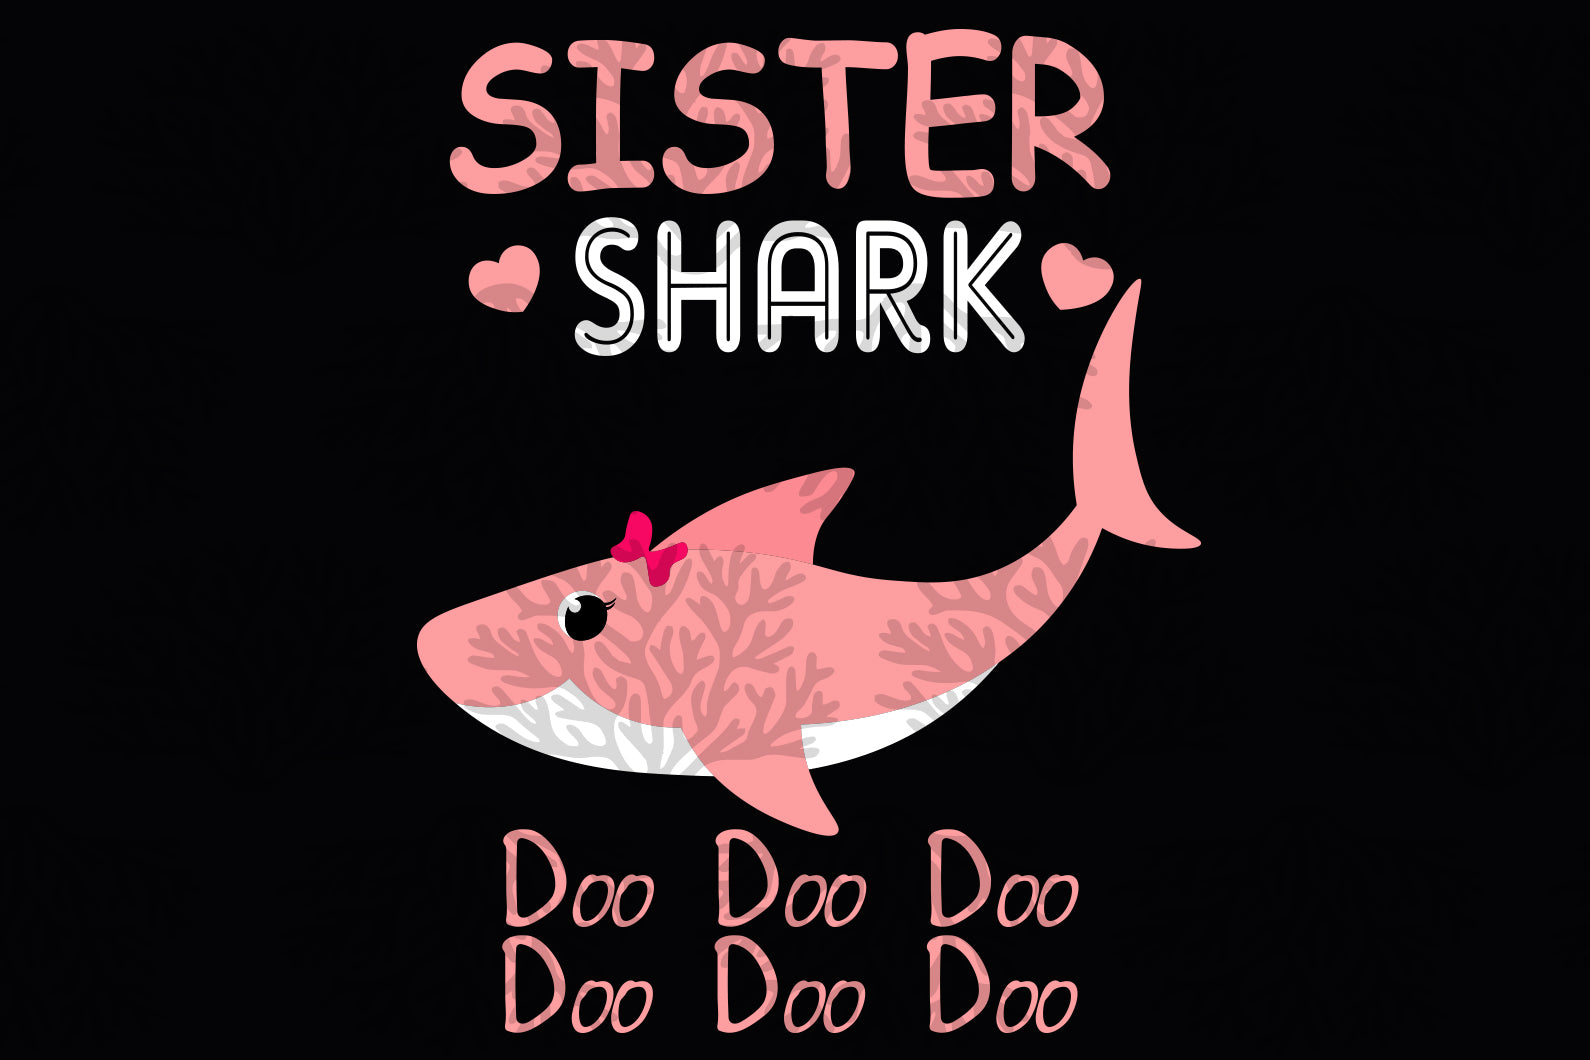 Sister shark doo doo svg,shark sister,gift for sister,sister gift,happy mothers day svg,mothers day svg,mom svg, gift for daddy,daddy shirt,love mom, family svg,mothers day gift,